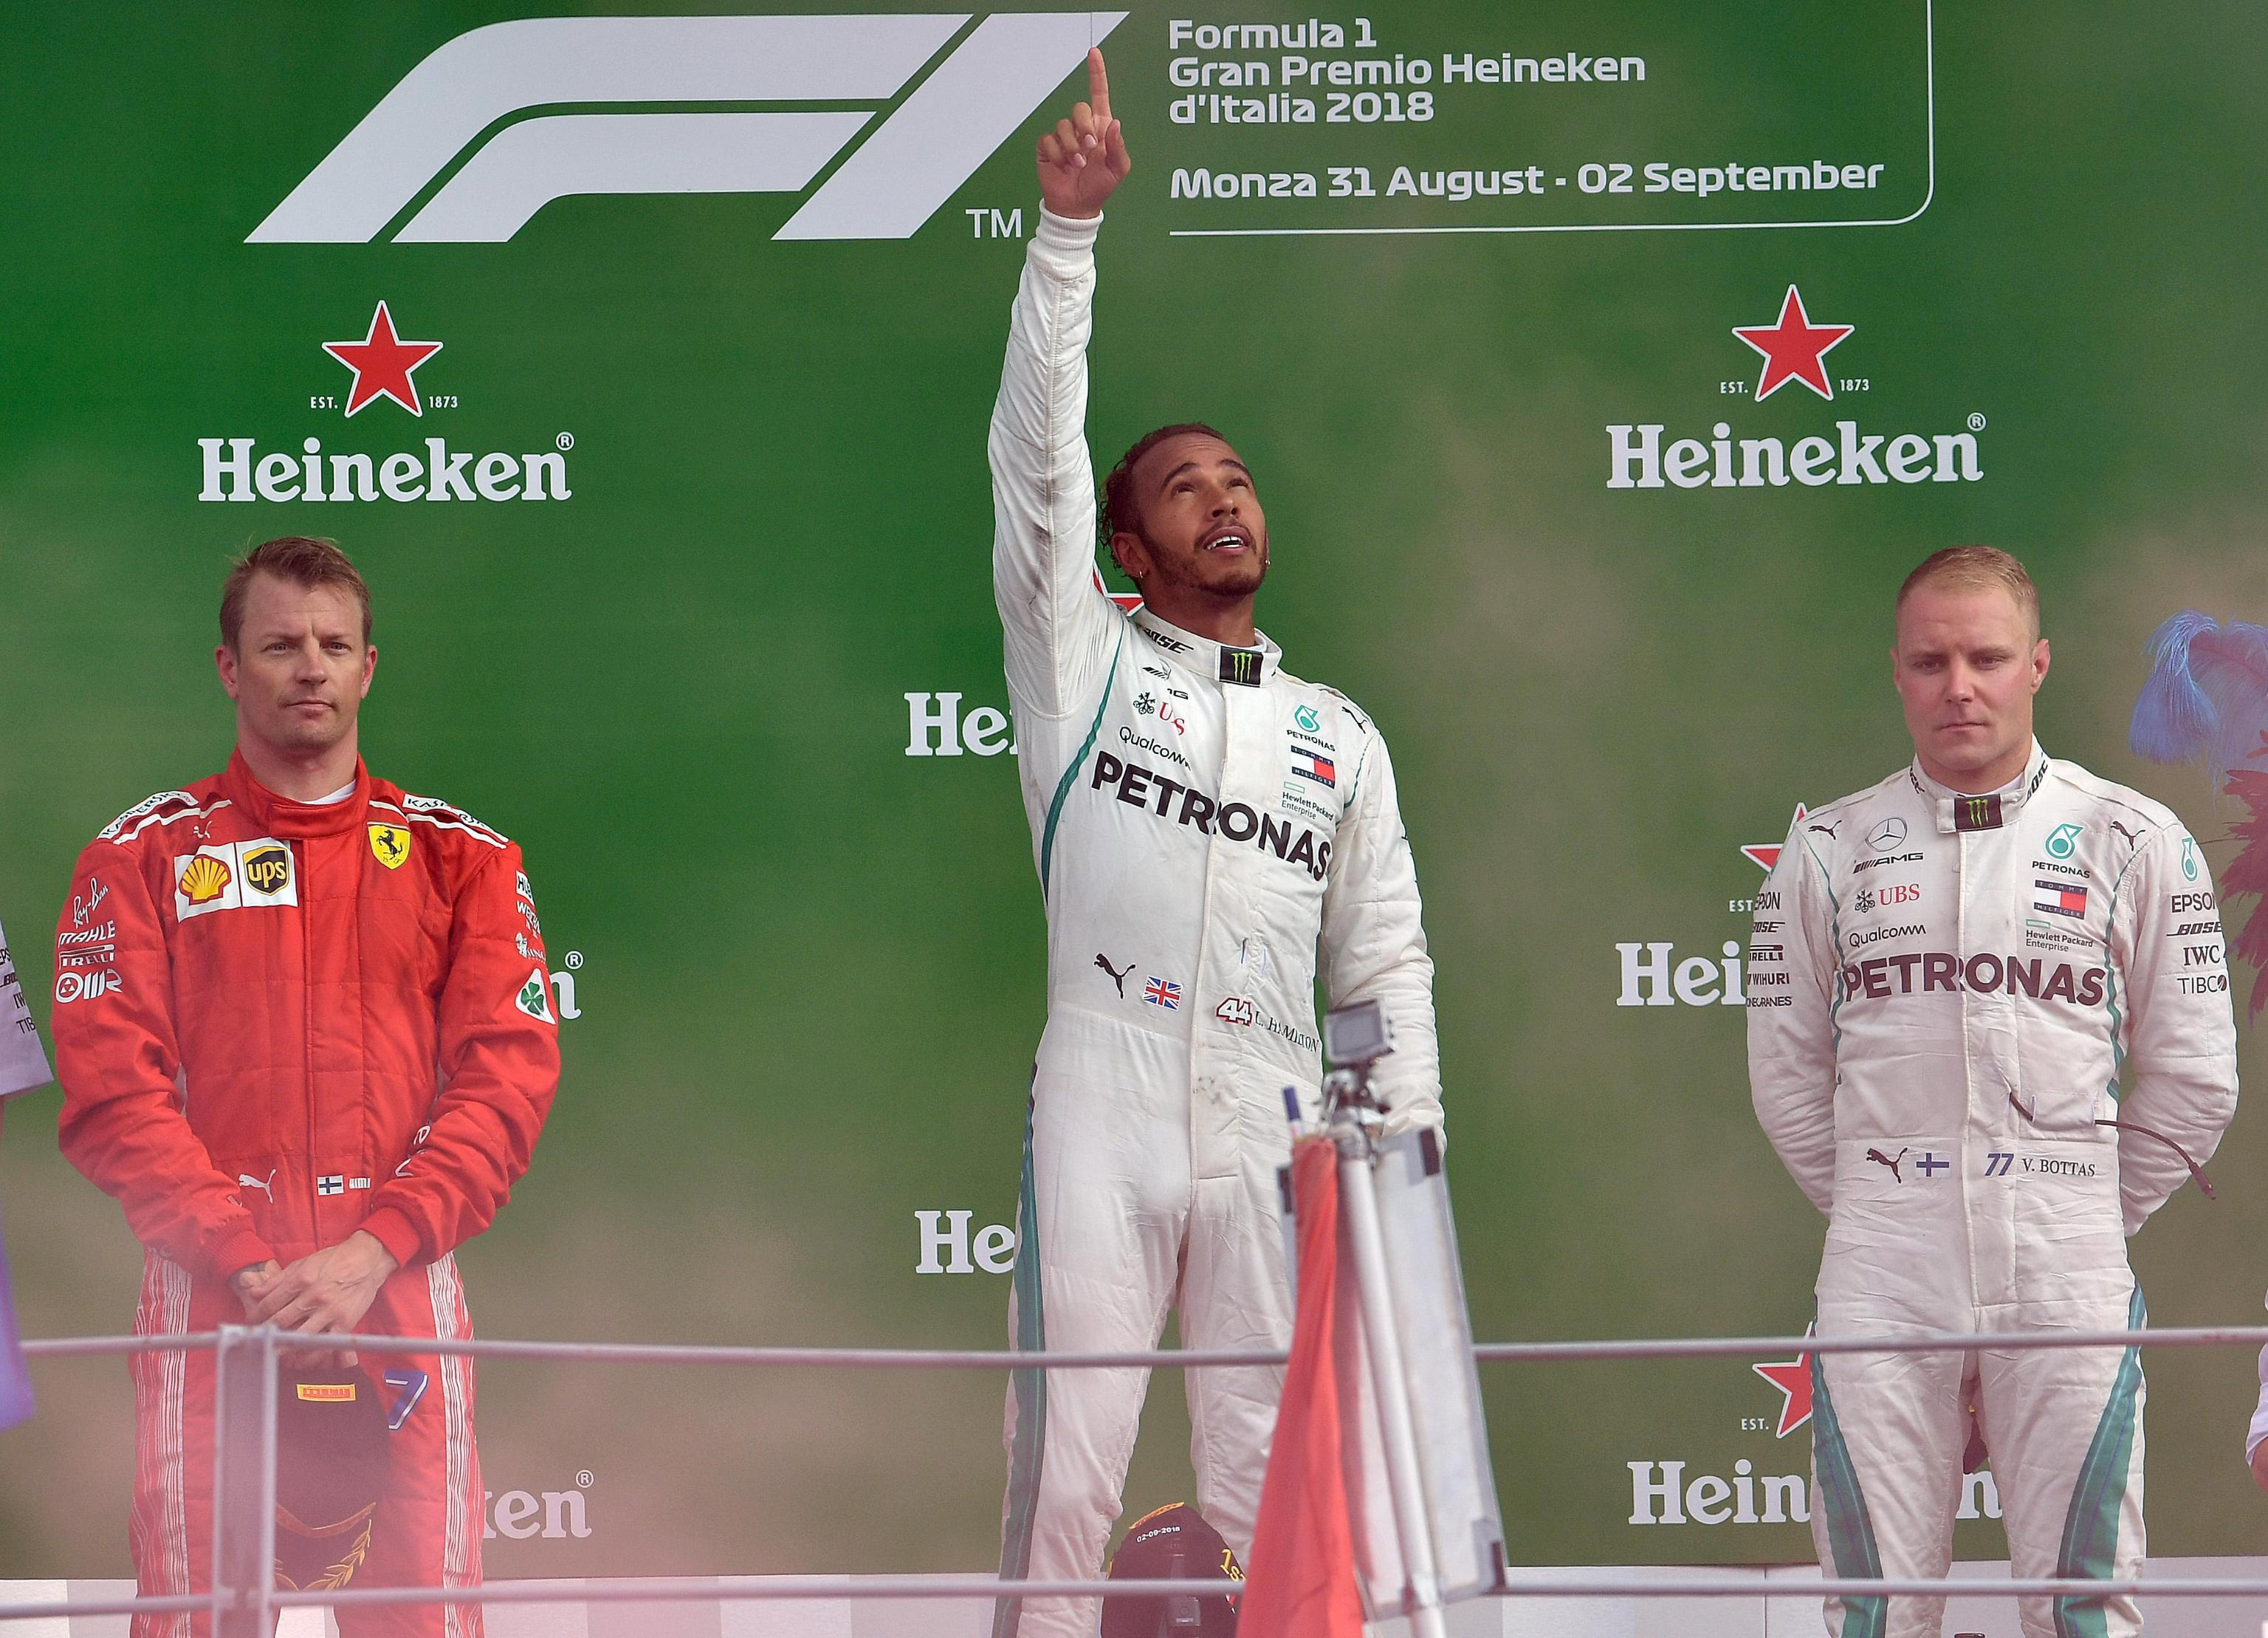 Will he continue to fight for podium positions after his switch?